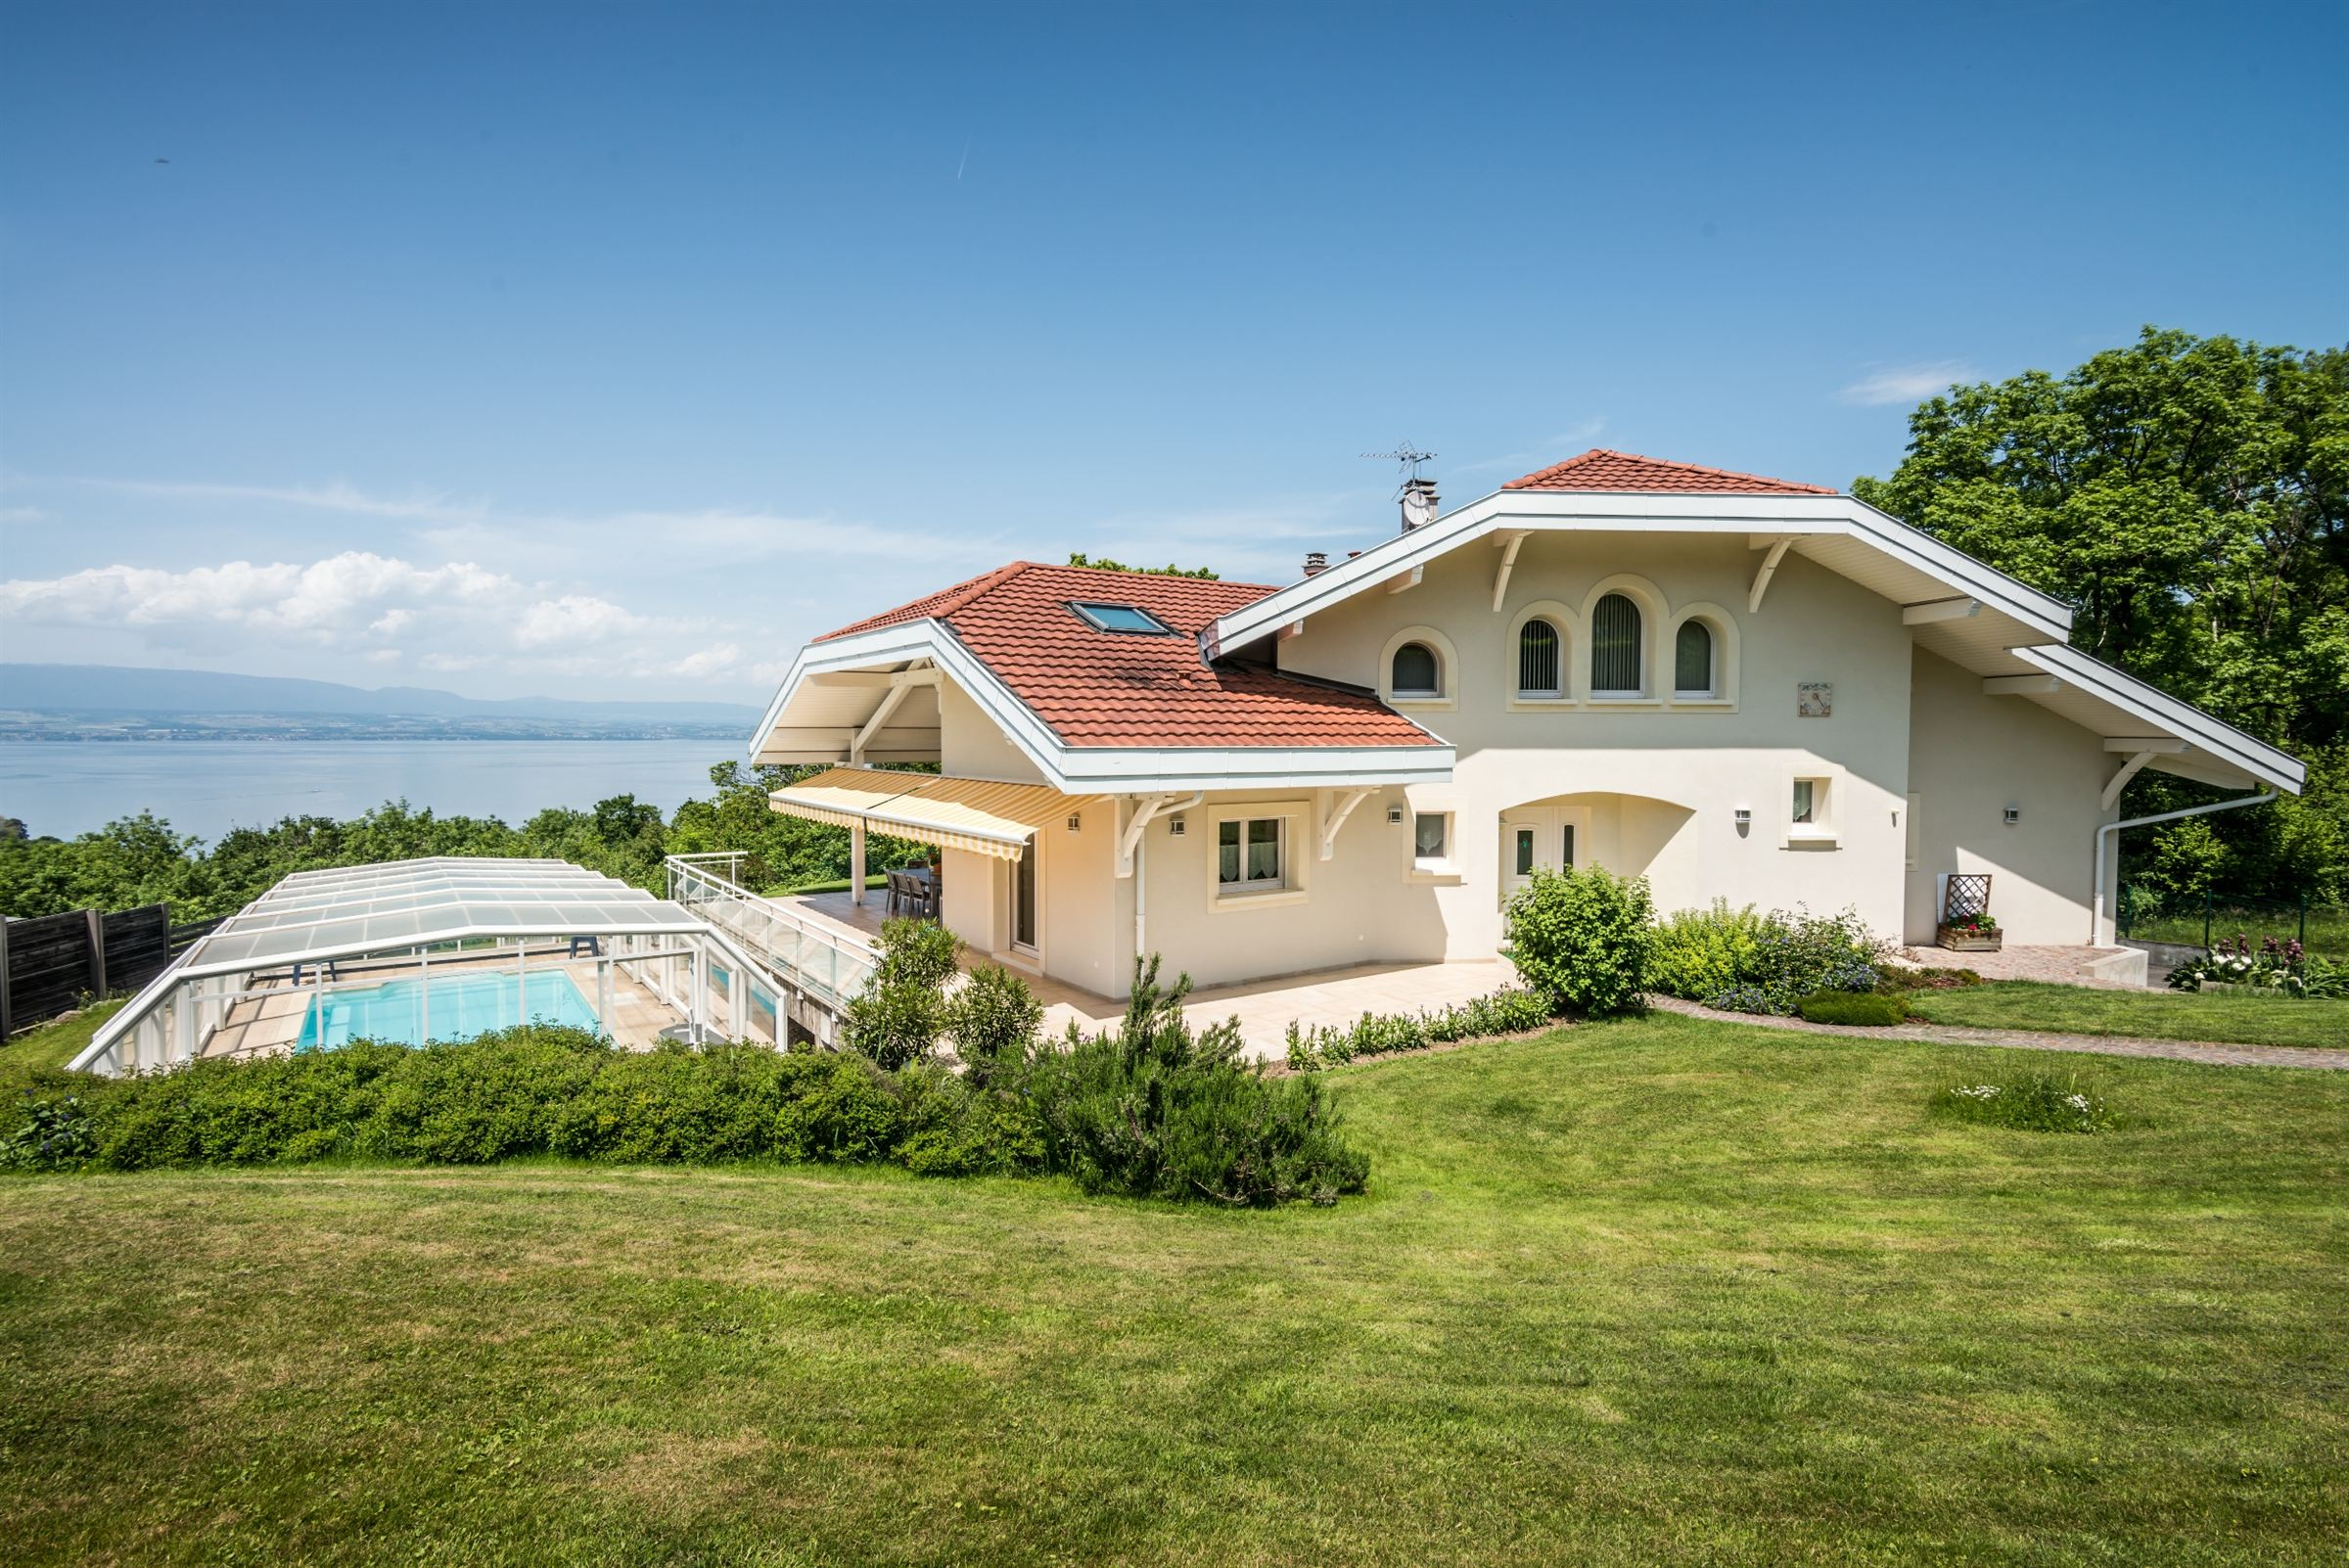 Single Family Home for Sale at PUBLIER : NICE VILLA LAKE VIEW Publier, Rhone-Alpes, 74500 France